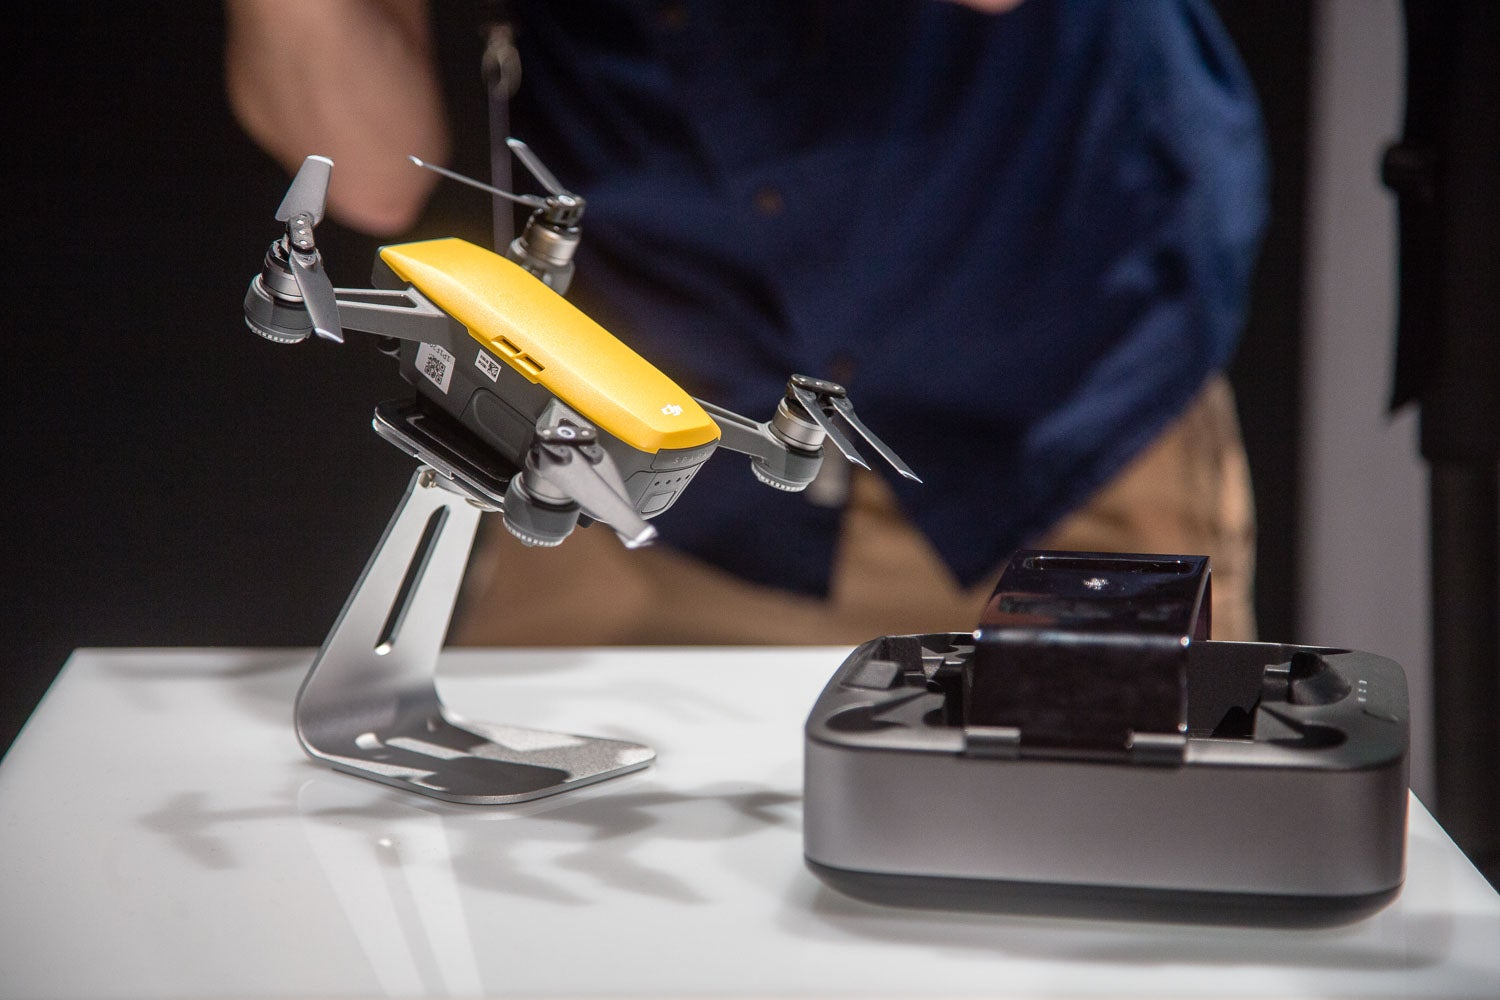 The DJI Spark drone might actually be simple enough for the average person